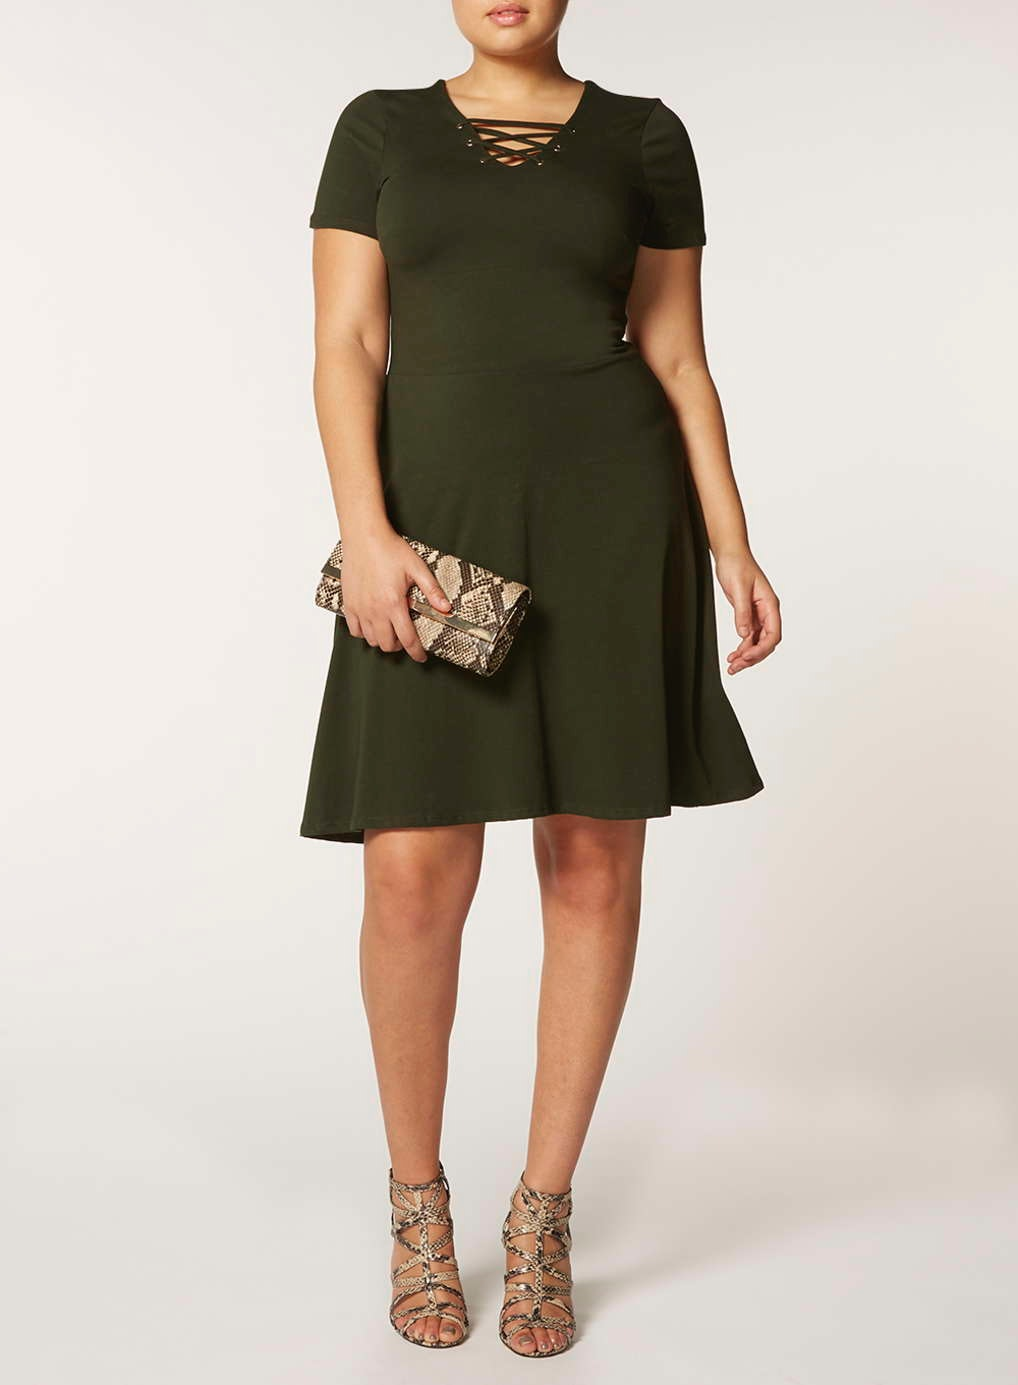 495a9751de7 Dorothy Perkins Launches DP Curve